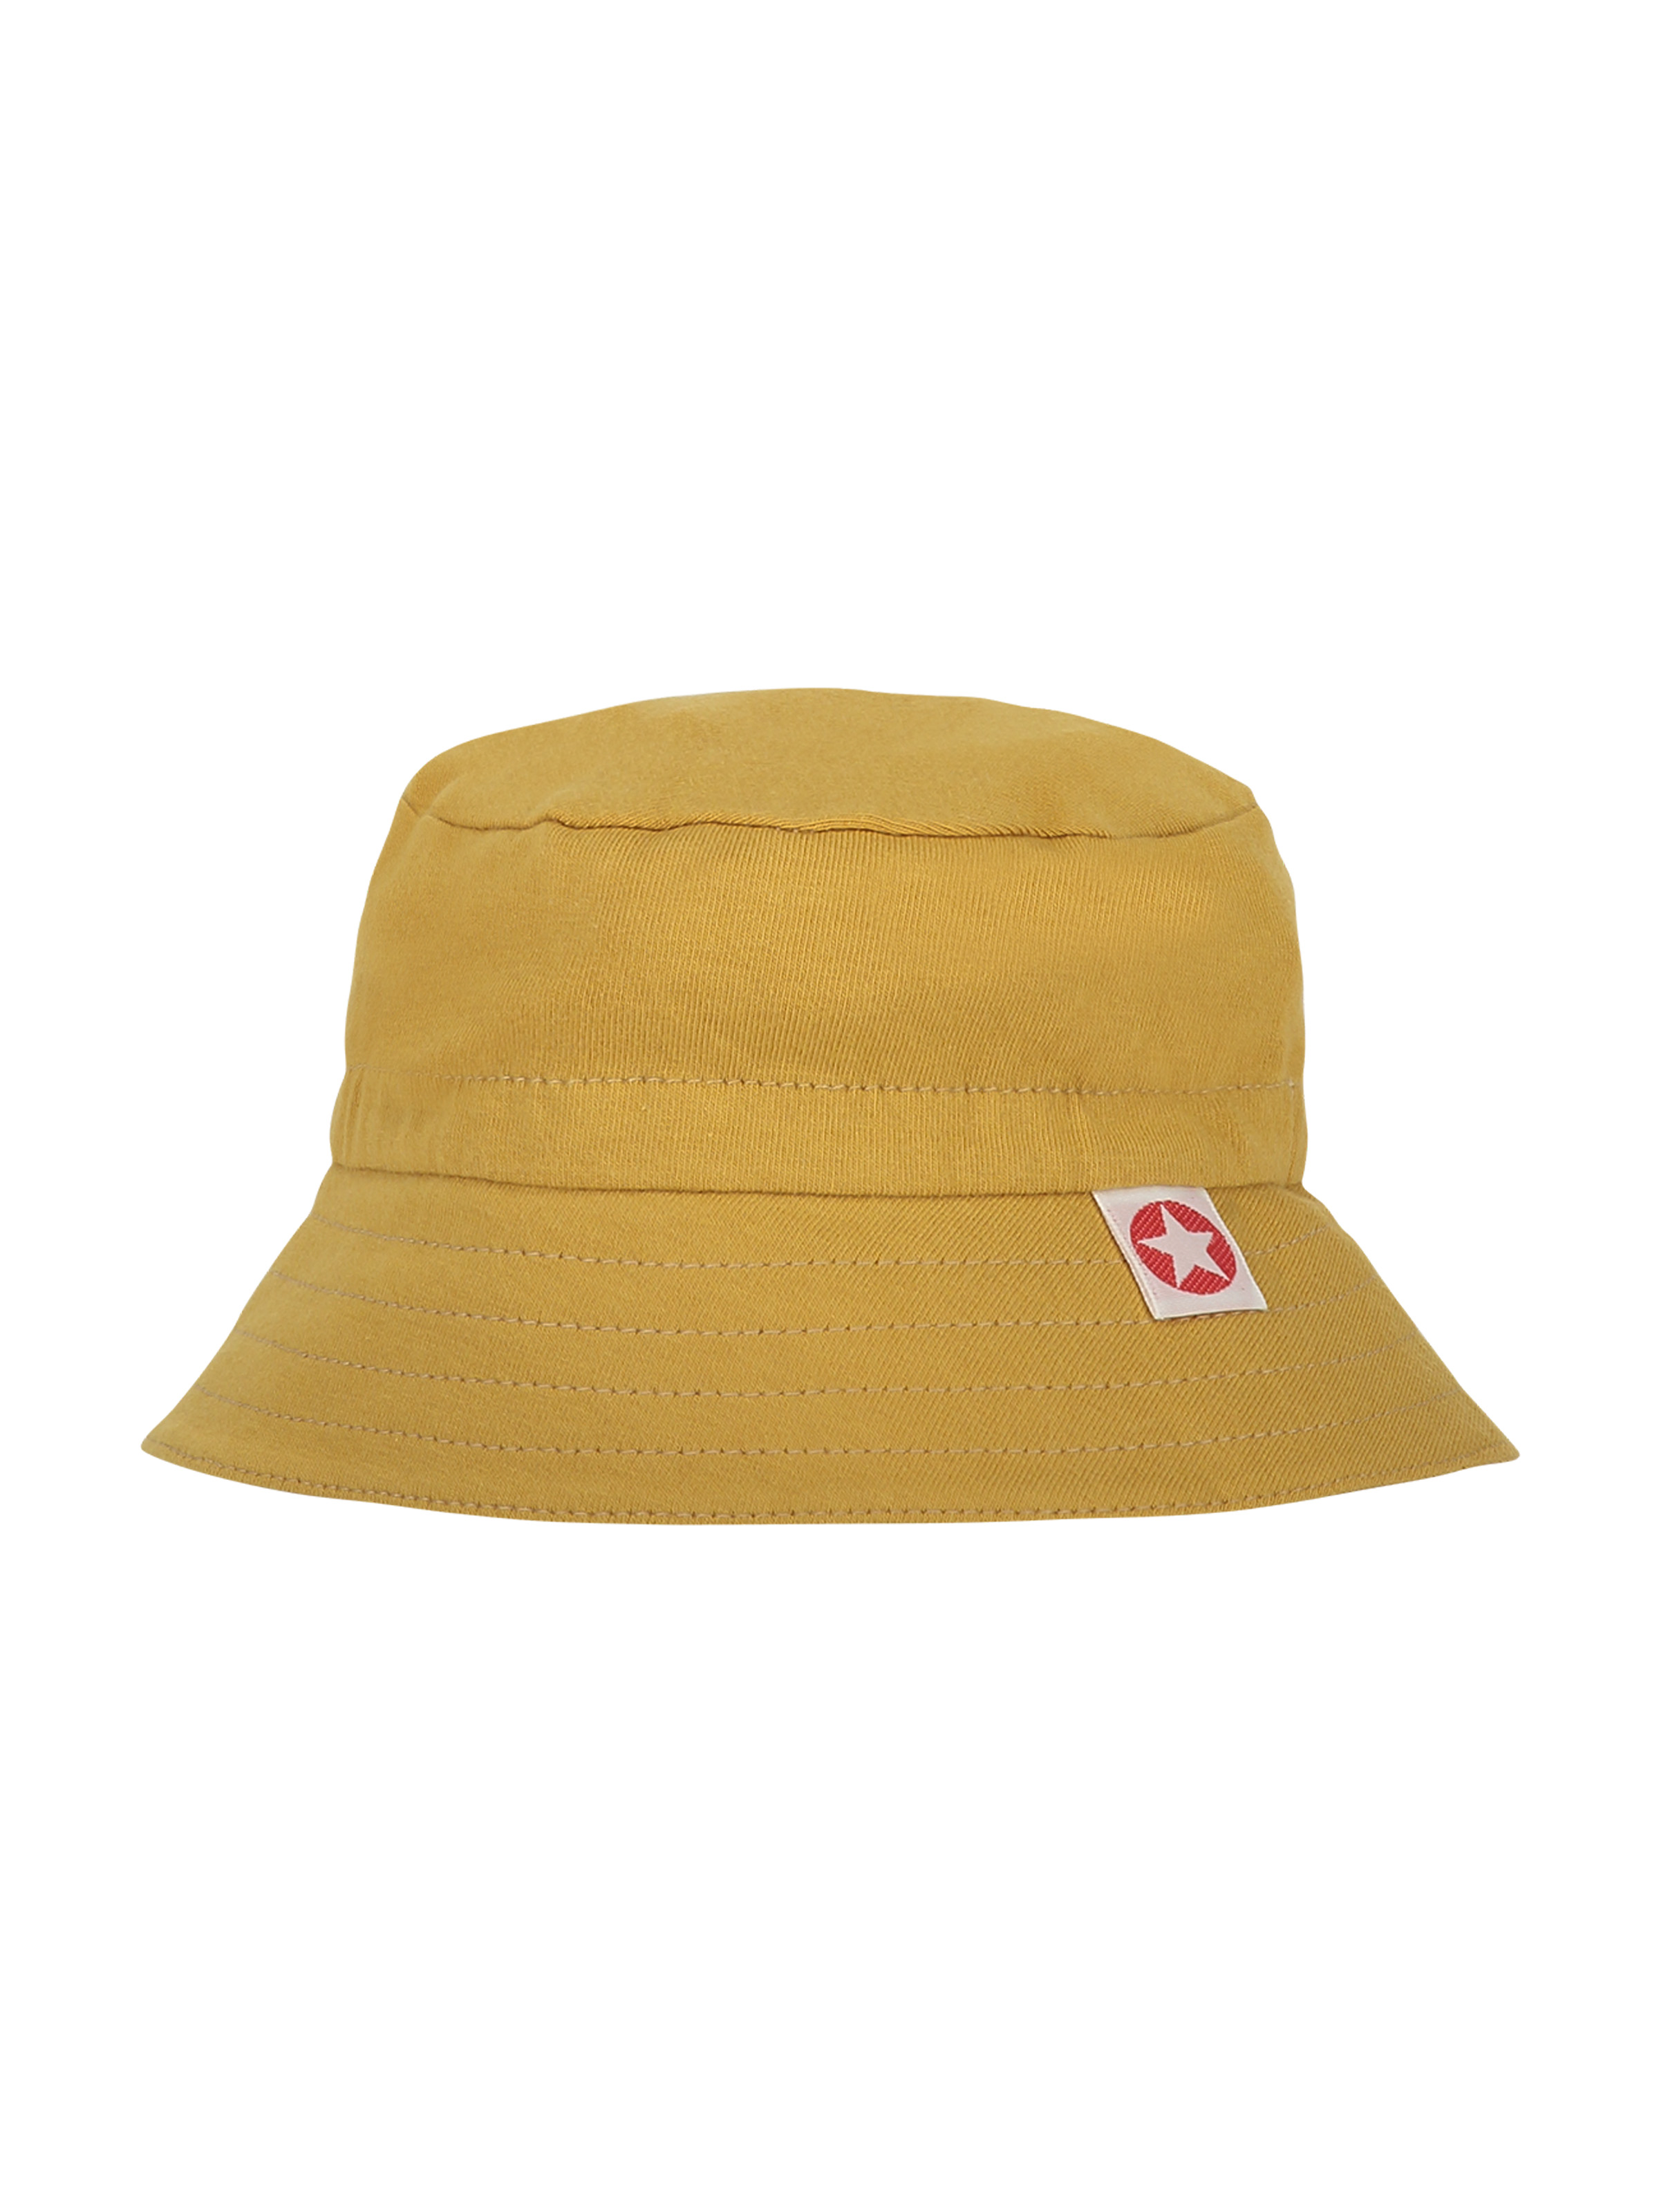 Hat tiba rand basics -yellow